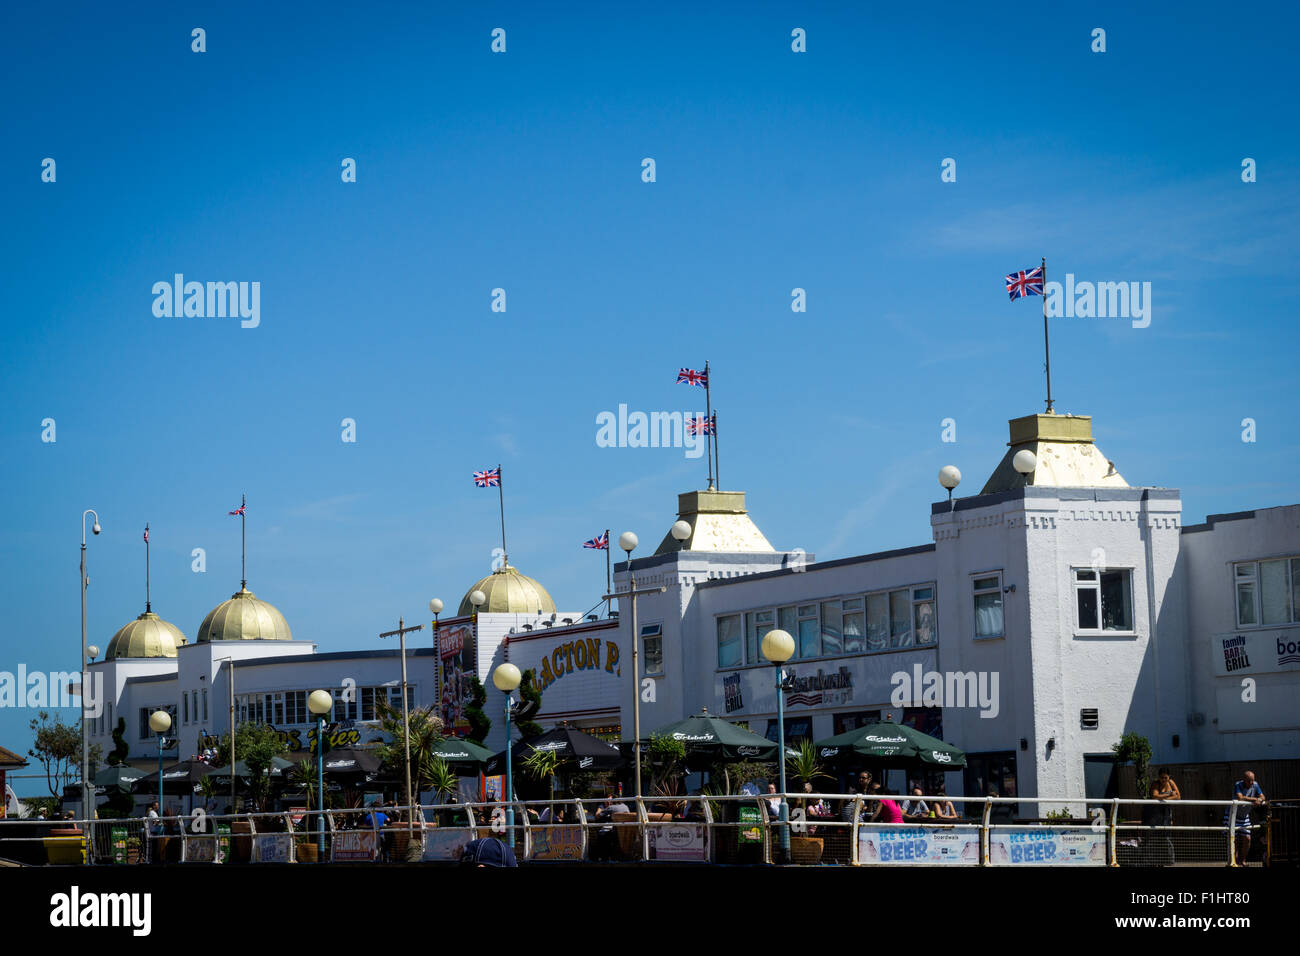 A view of Clacton pier, Clacton-on-Sea, Essex, UK - Stock Image